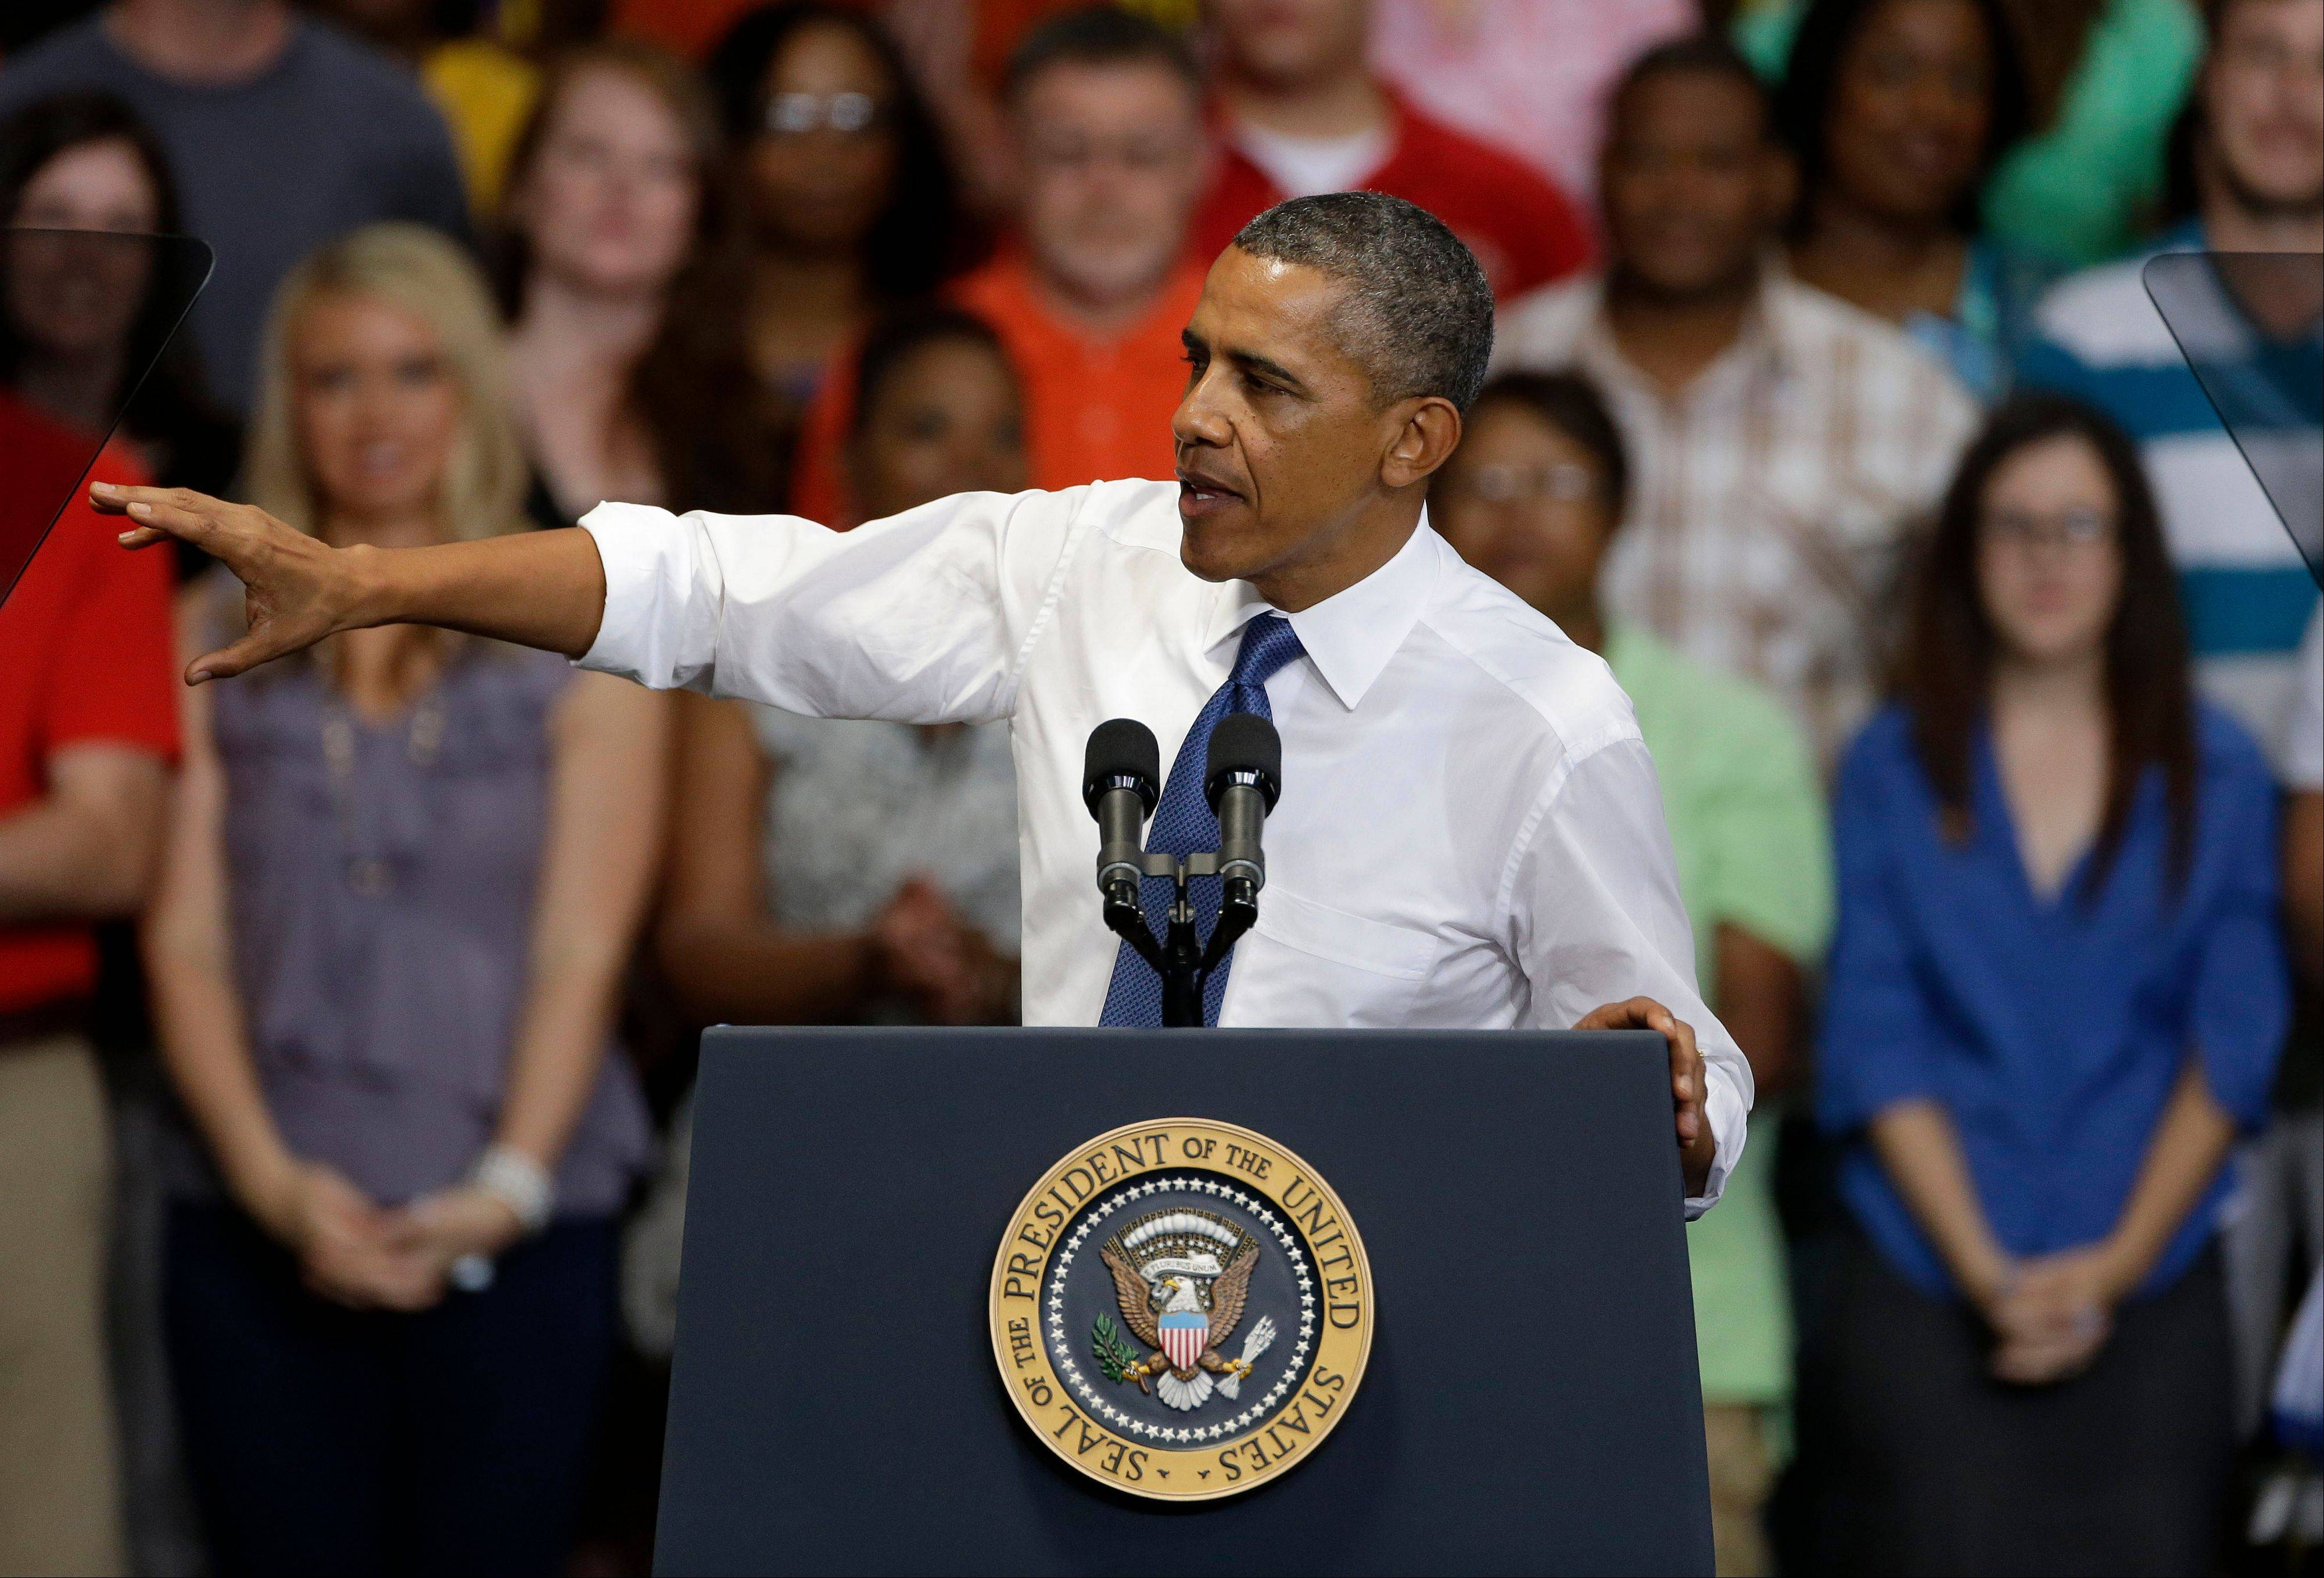 President Barack Obama, at an Amazon distribution center in Chattanooga, Tenn., Sunday, prodded Congress to consider fresh economic proposals after two years of gridlock.